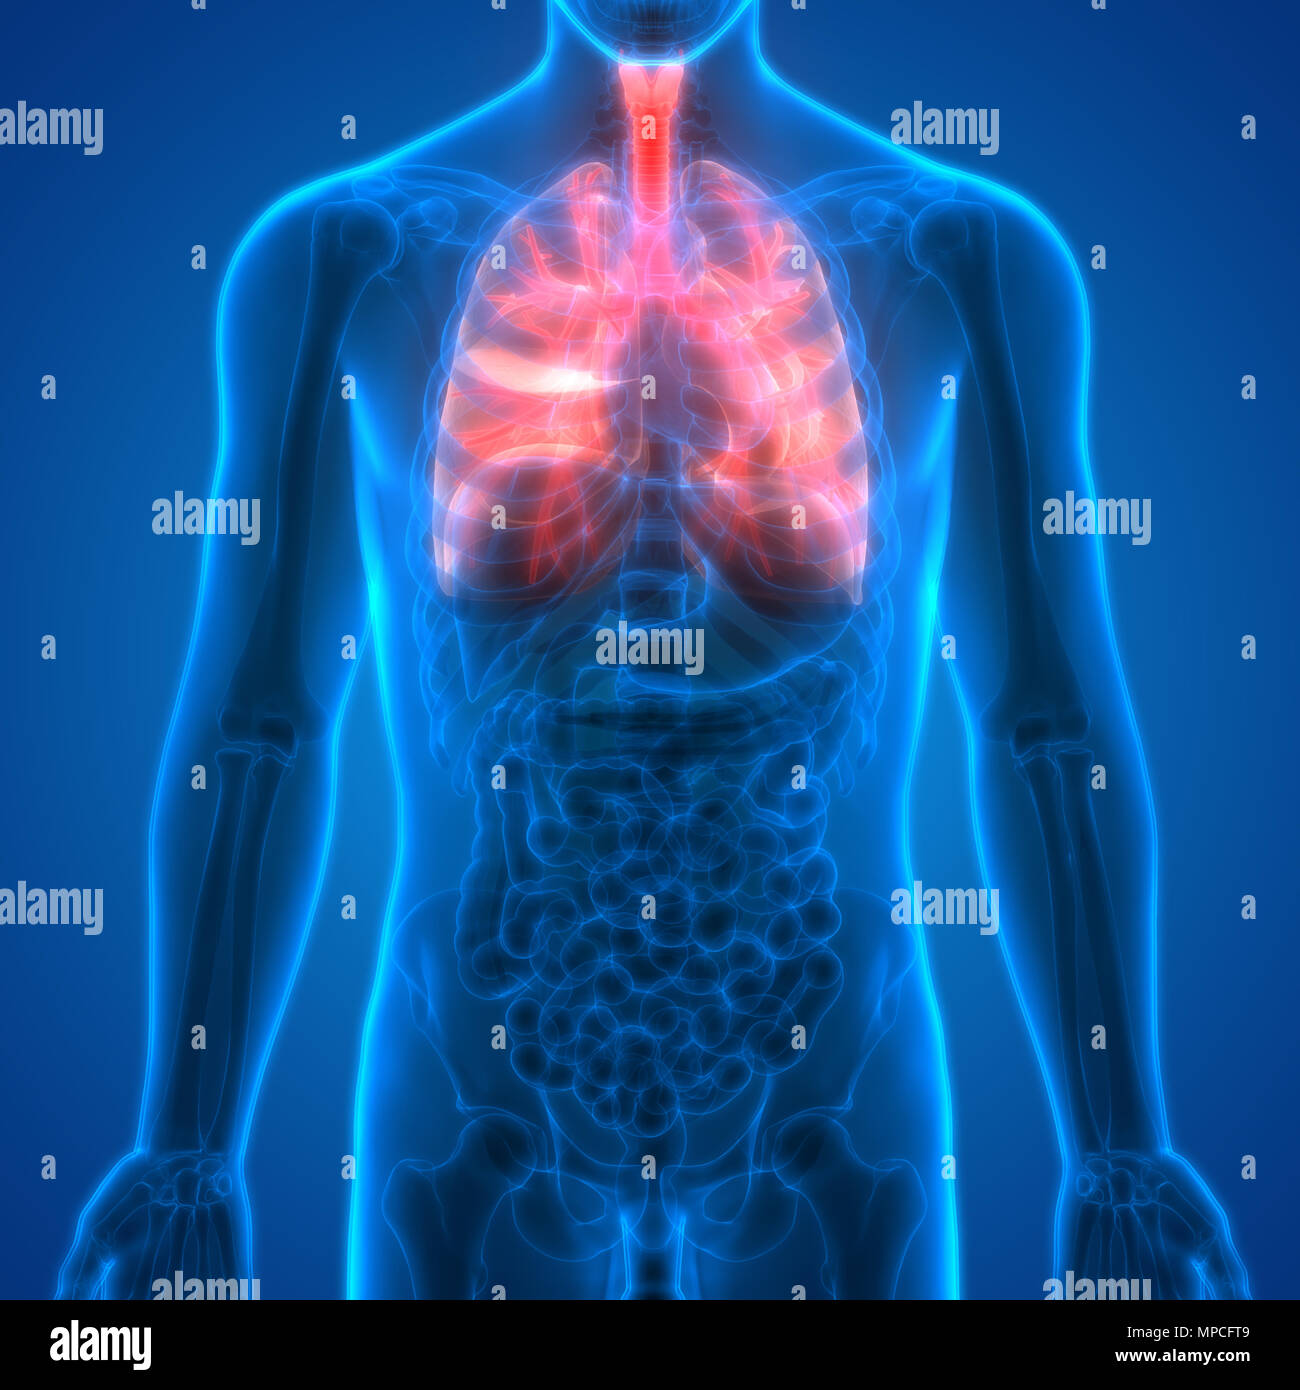 Human Respiratory System Lungs Anatomy Stock Photo 185901977 Alamy